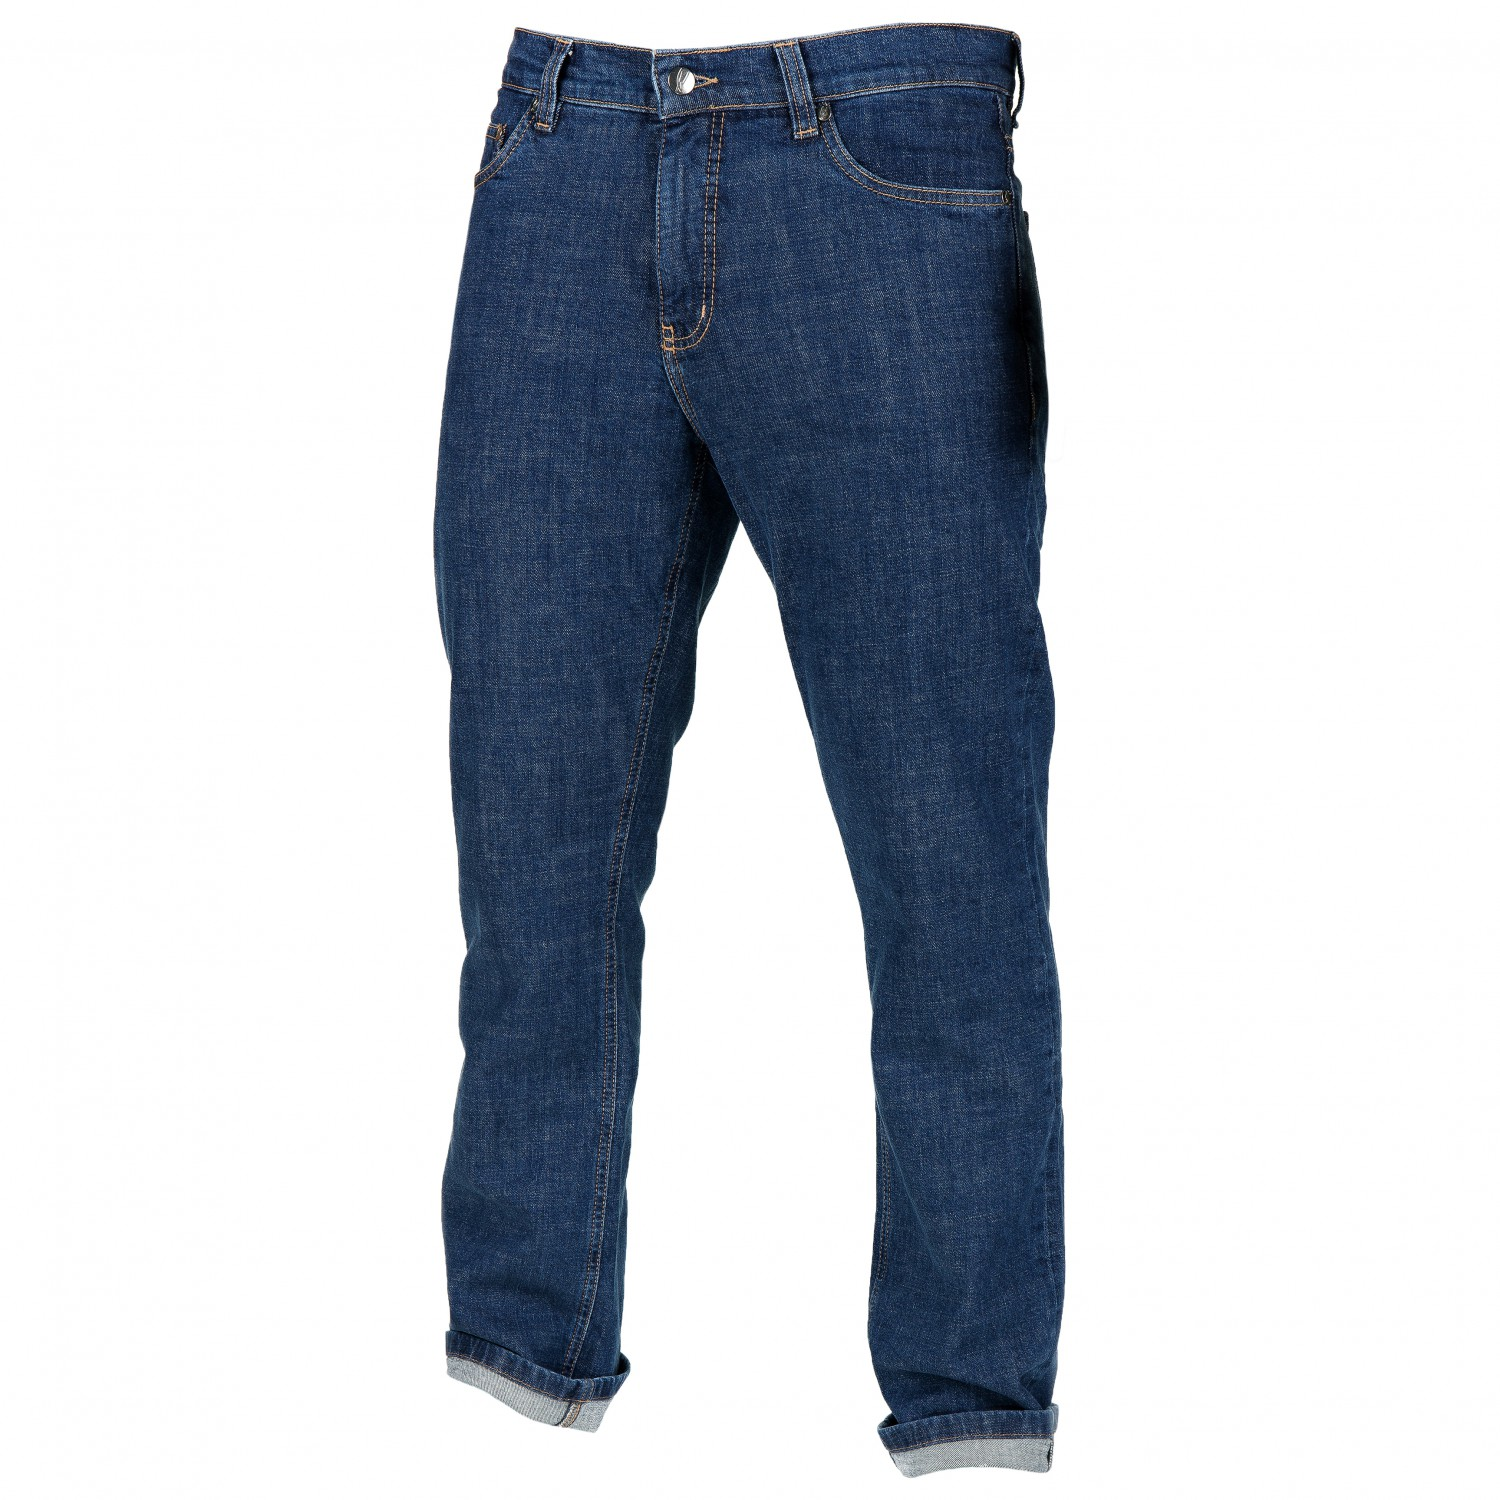 347e159f58a76 Bleed Bleed Functional Jeans - Tejanos Hombre